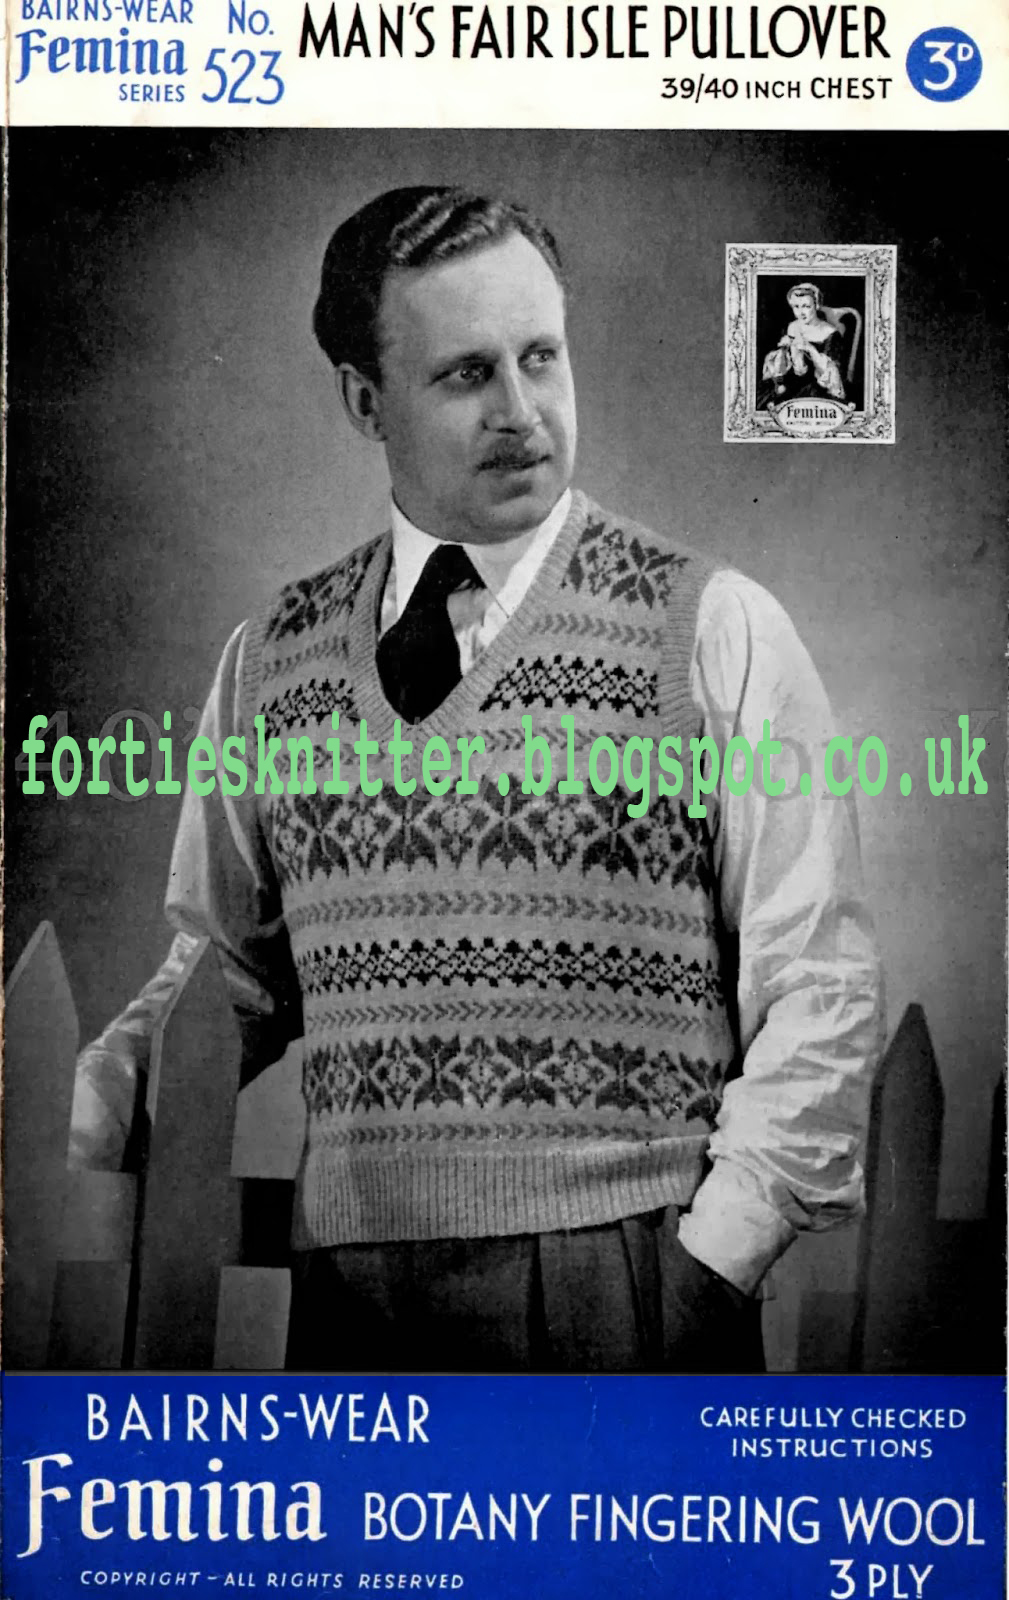 1940's Knitting - Barins Wear Man's Fair Isle Pullover Free pattern